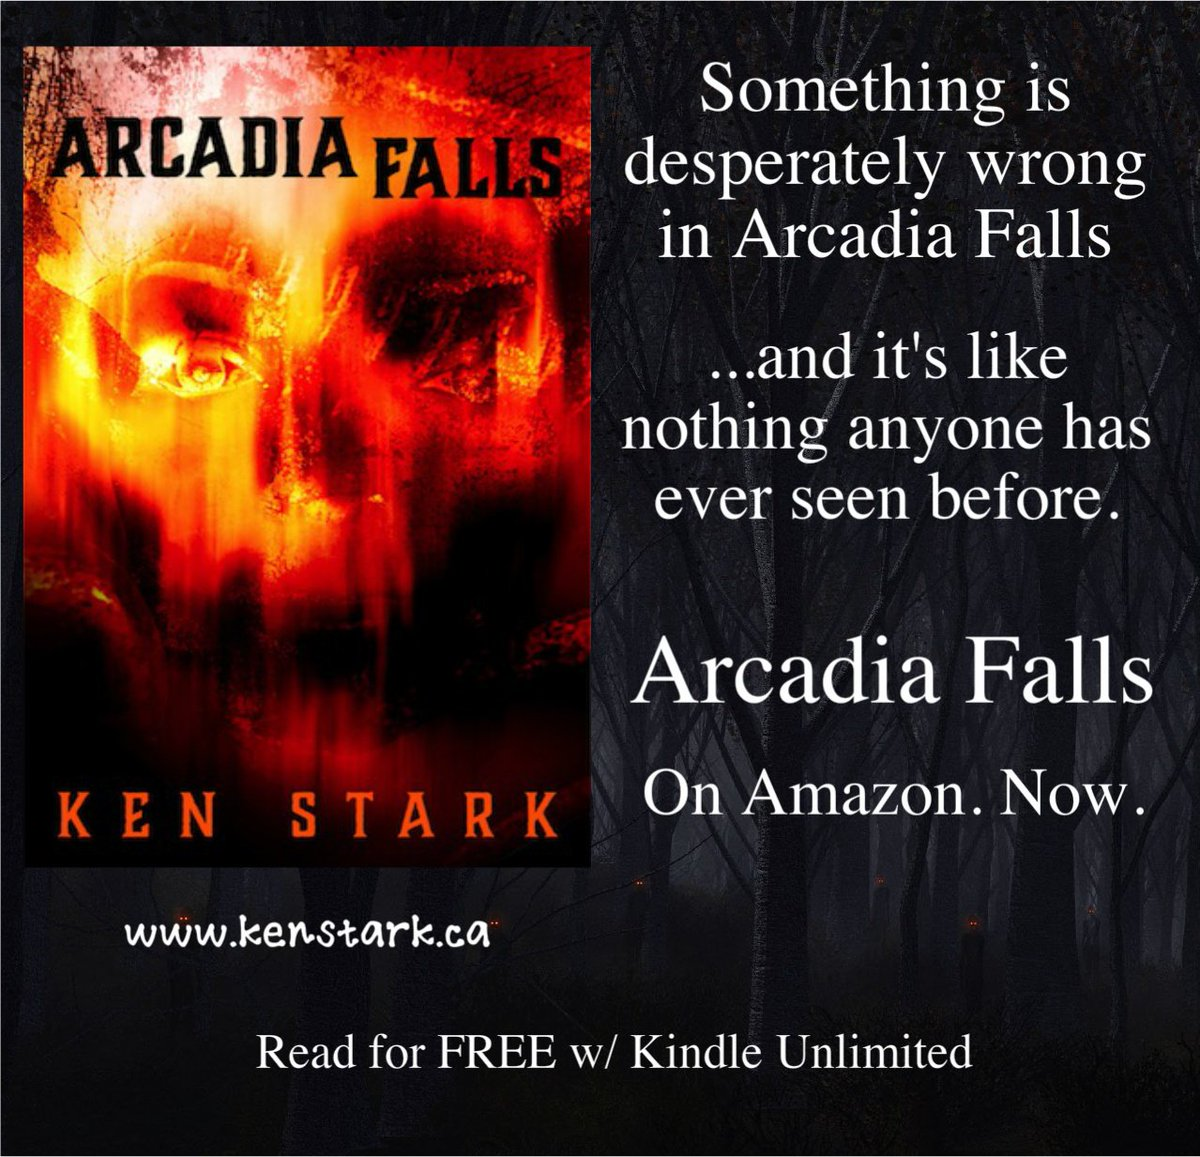 &quot;It knows we know! It knows we know, and it&#39;s after us!&quot;  #horror #mystery #thriller #YABookPromo #new #indie #ArcadiaFalls #FREE w/ #KindleUnlimited   https://www. amazon.com/dp/B077VVQVL4/ ref=la_B01D911QC2 &nbsp; … <br>http://pic.twitter.com/kAzZusoy9S